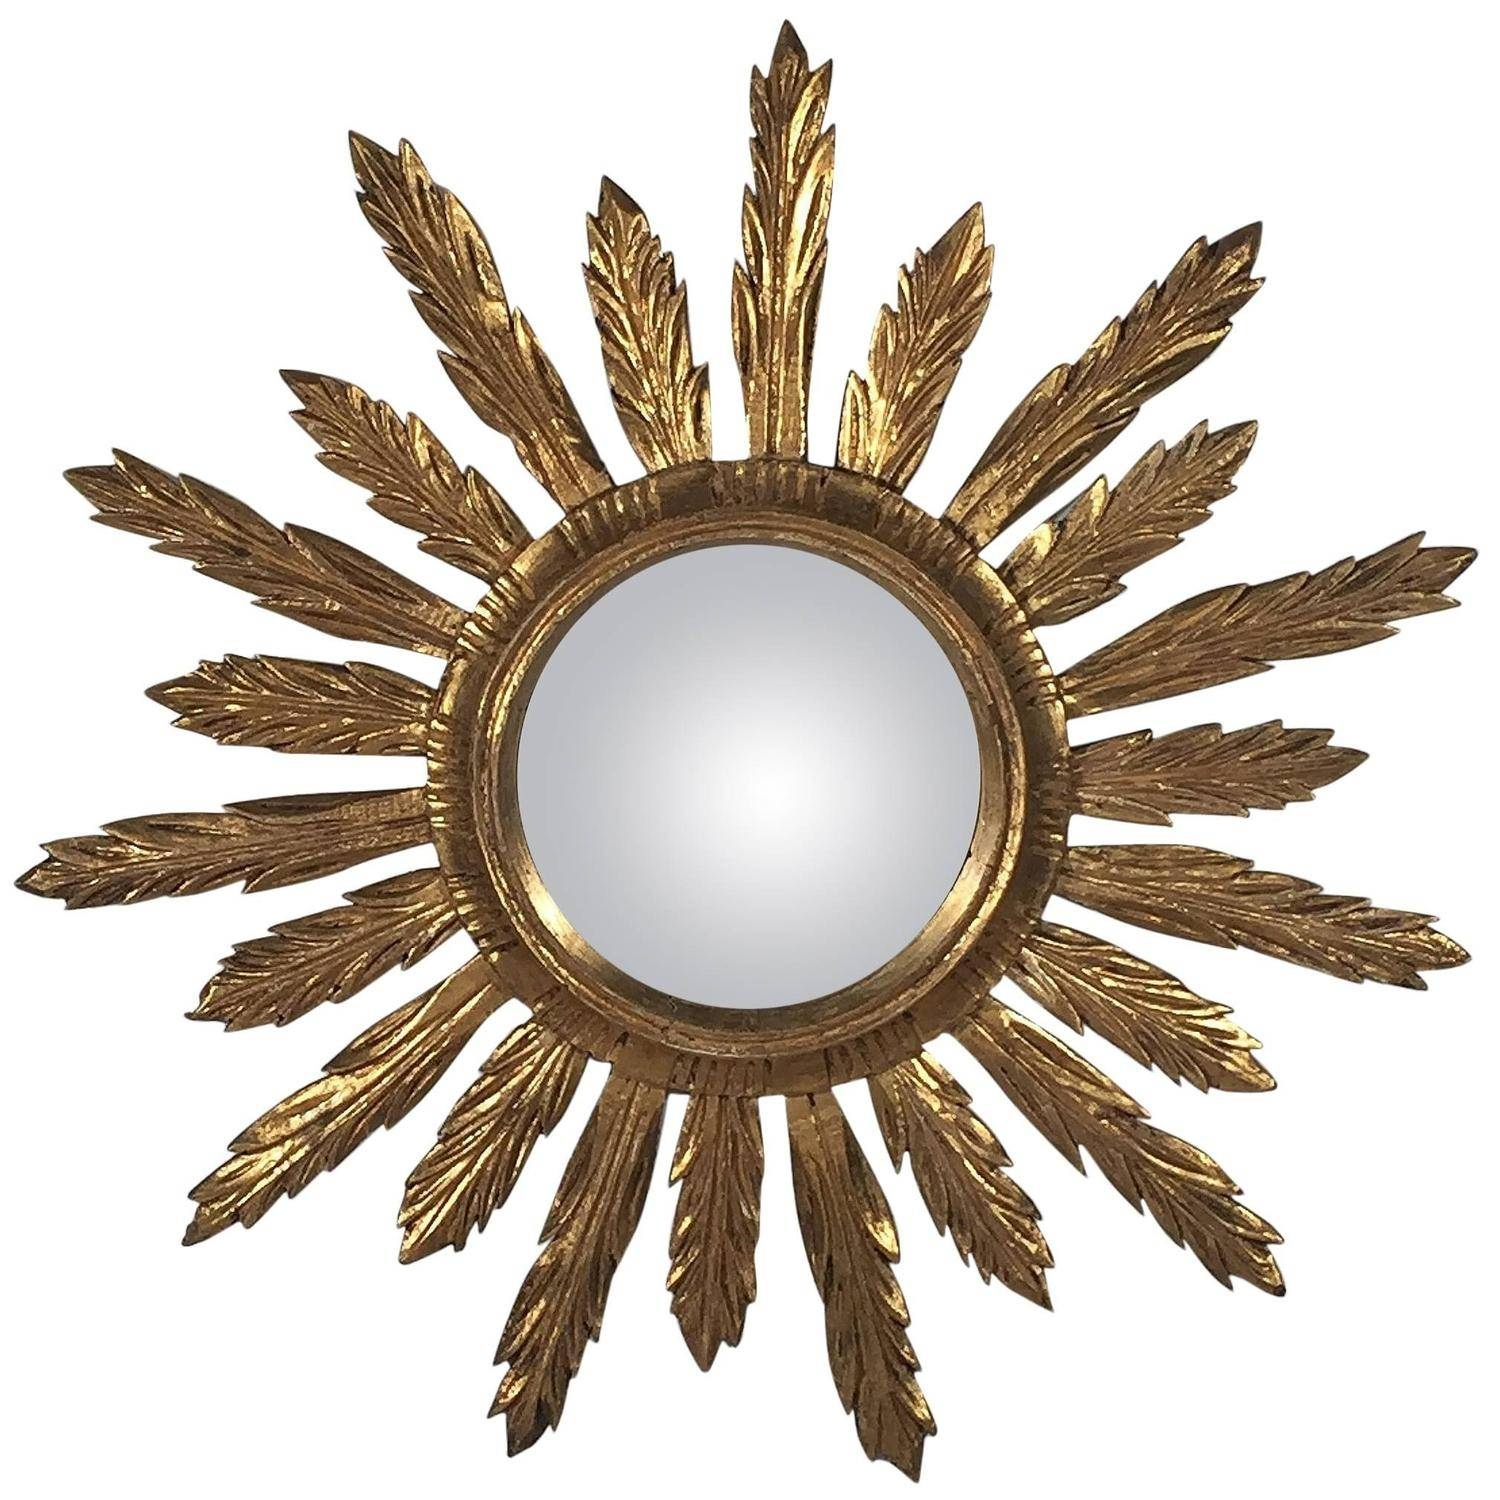 Sunburst Starburst Mirror Images – Reverse Search Throughout Starburst Convex Mirrors (View 14 of 15)